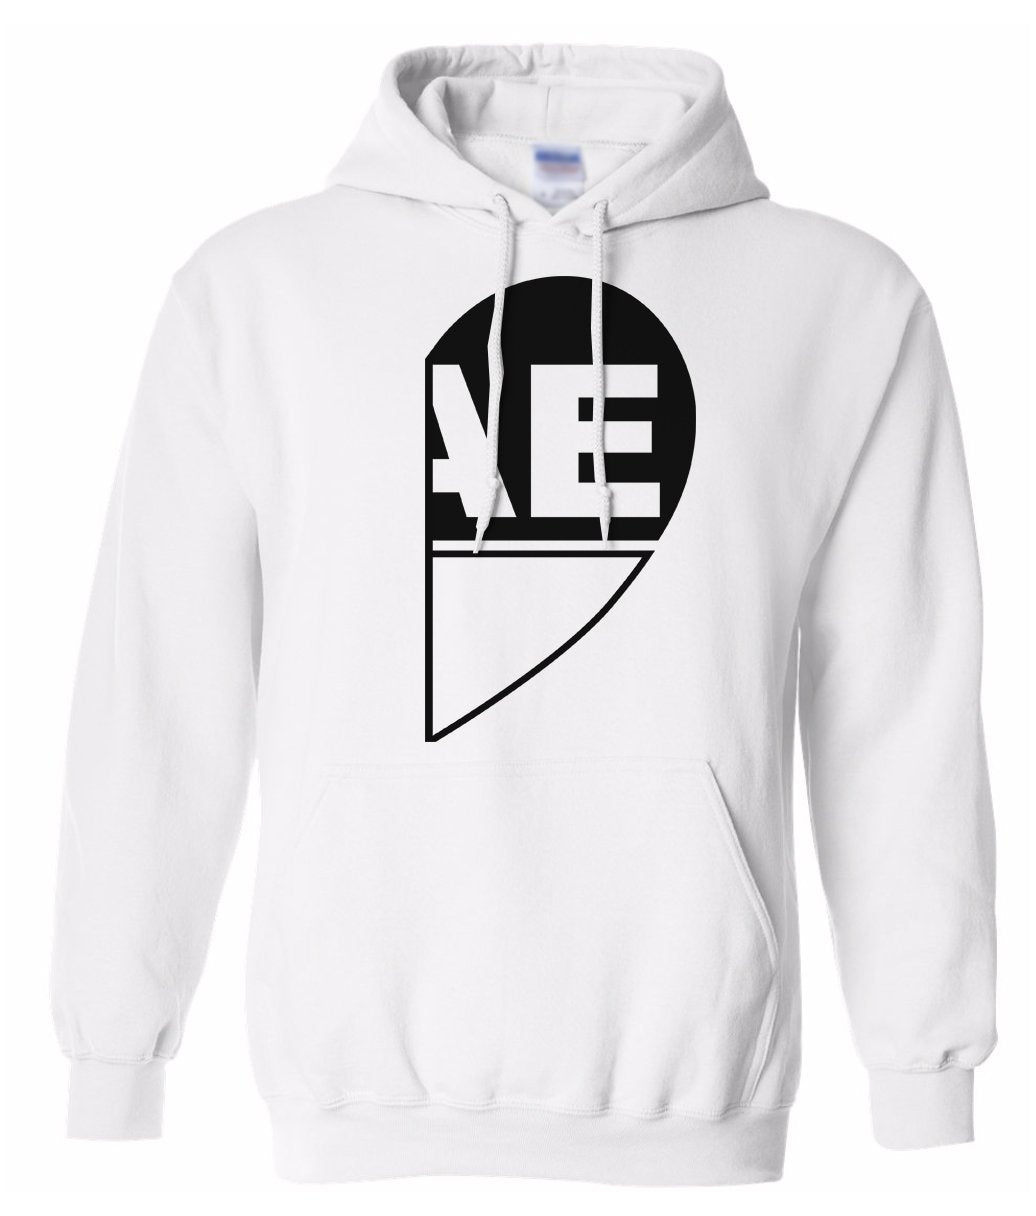 white BAE half heart matching couples valentines day hoodie